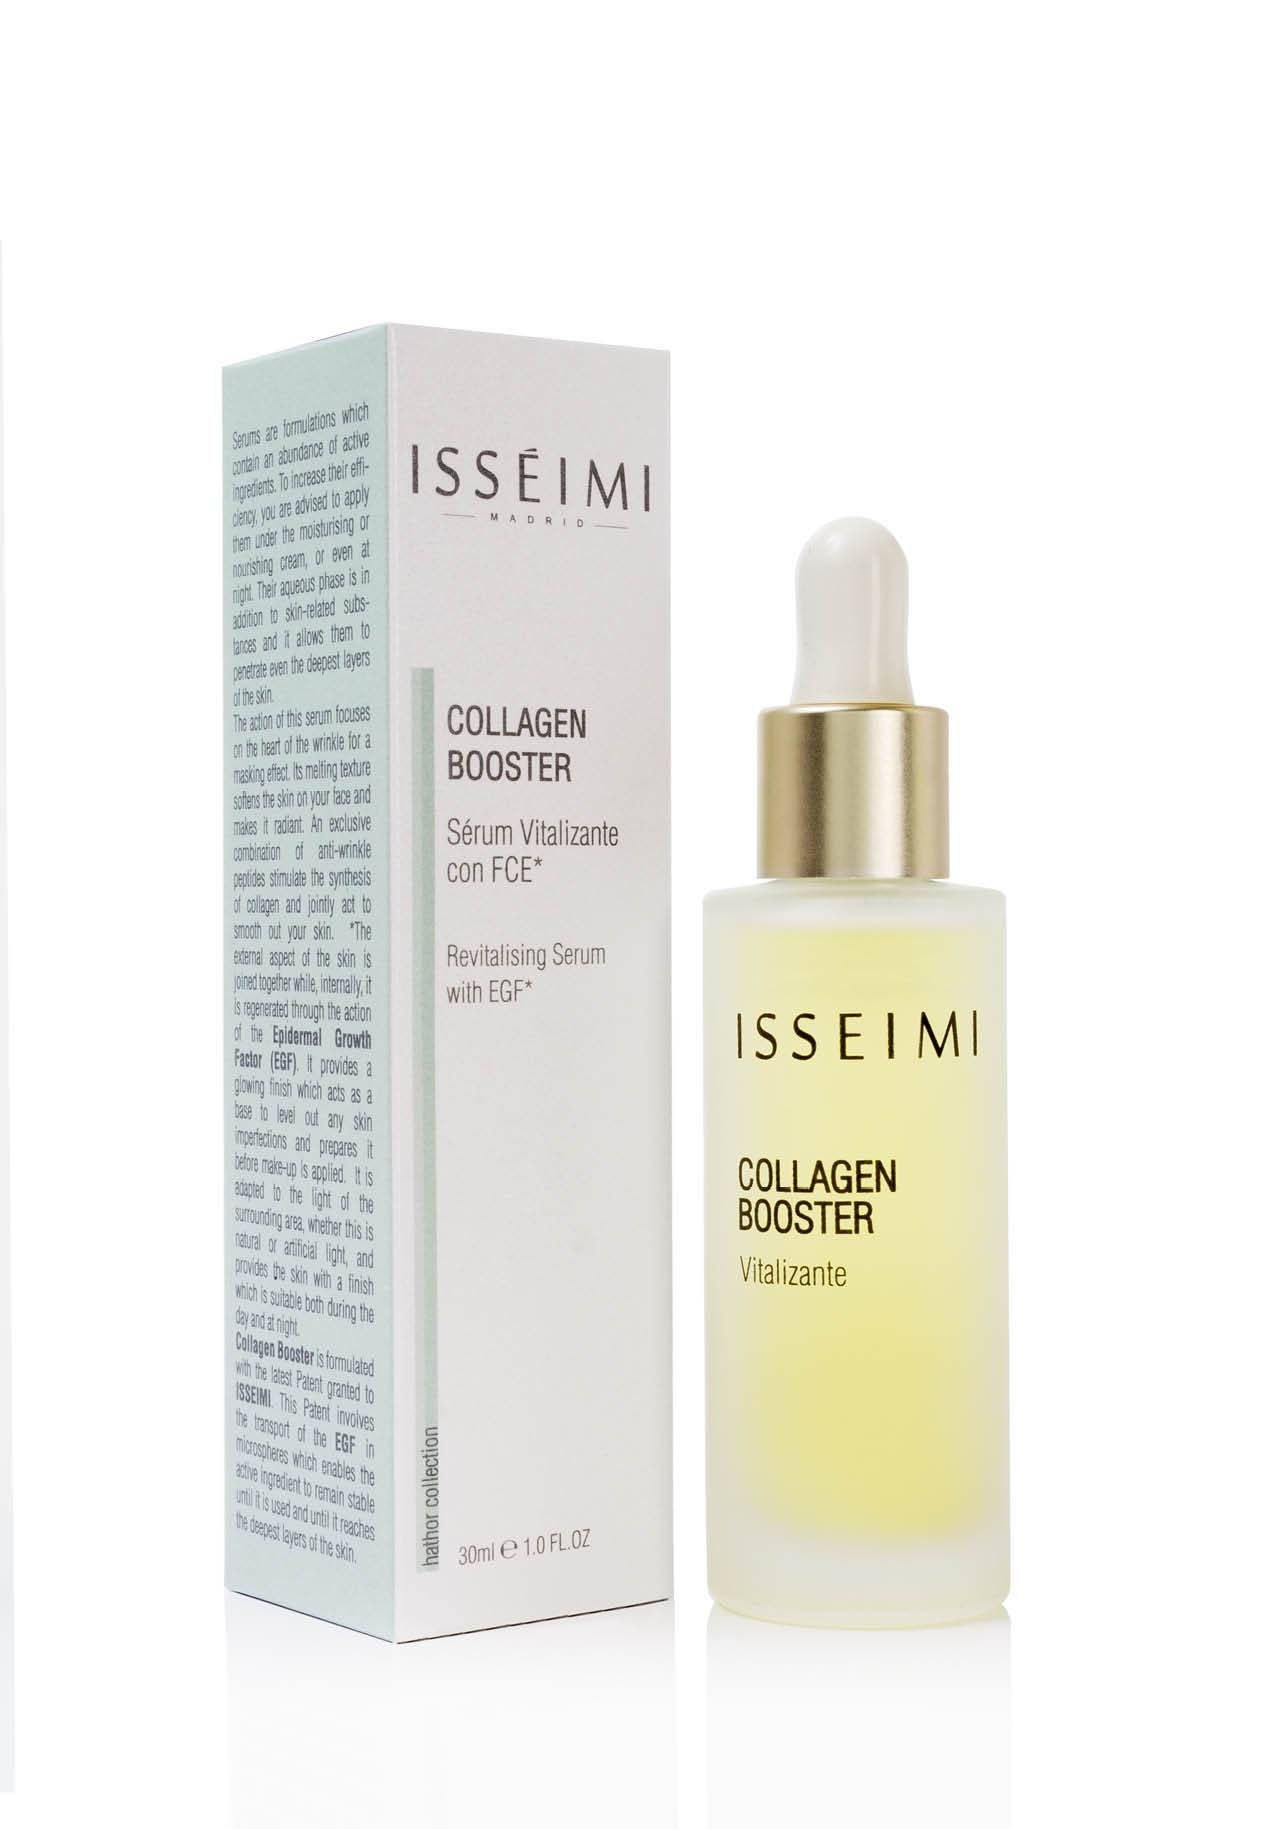 Cosmética boosters Collagen Booster de Isséimi